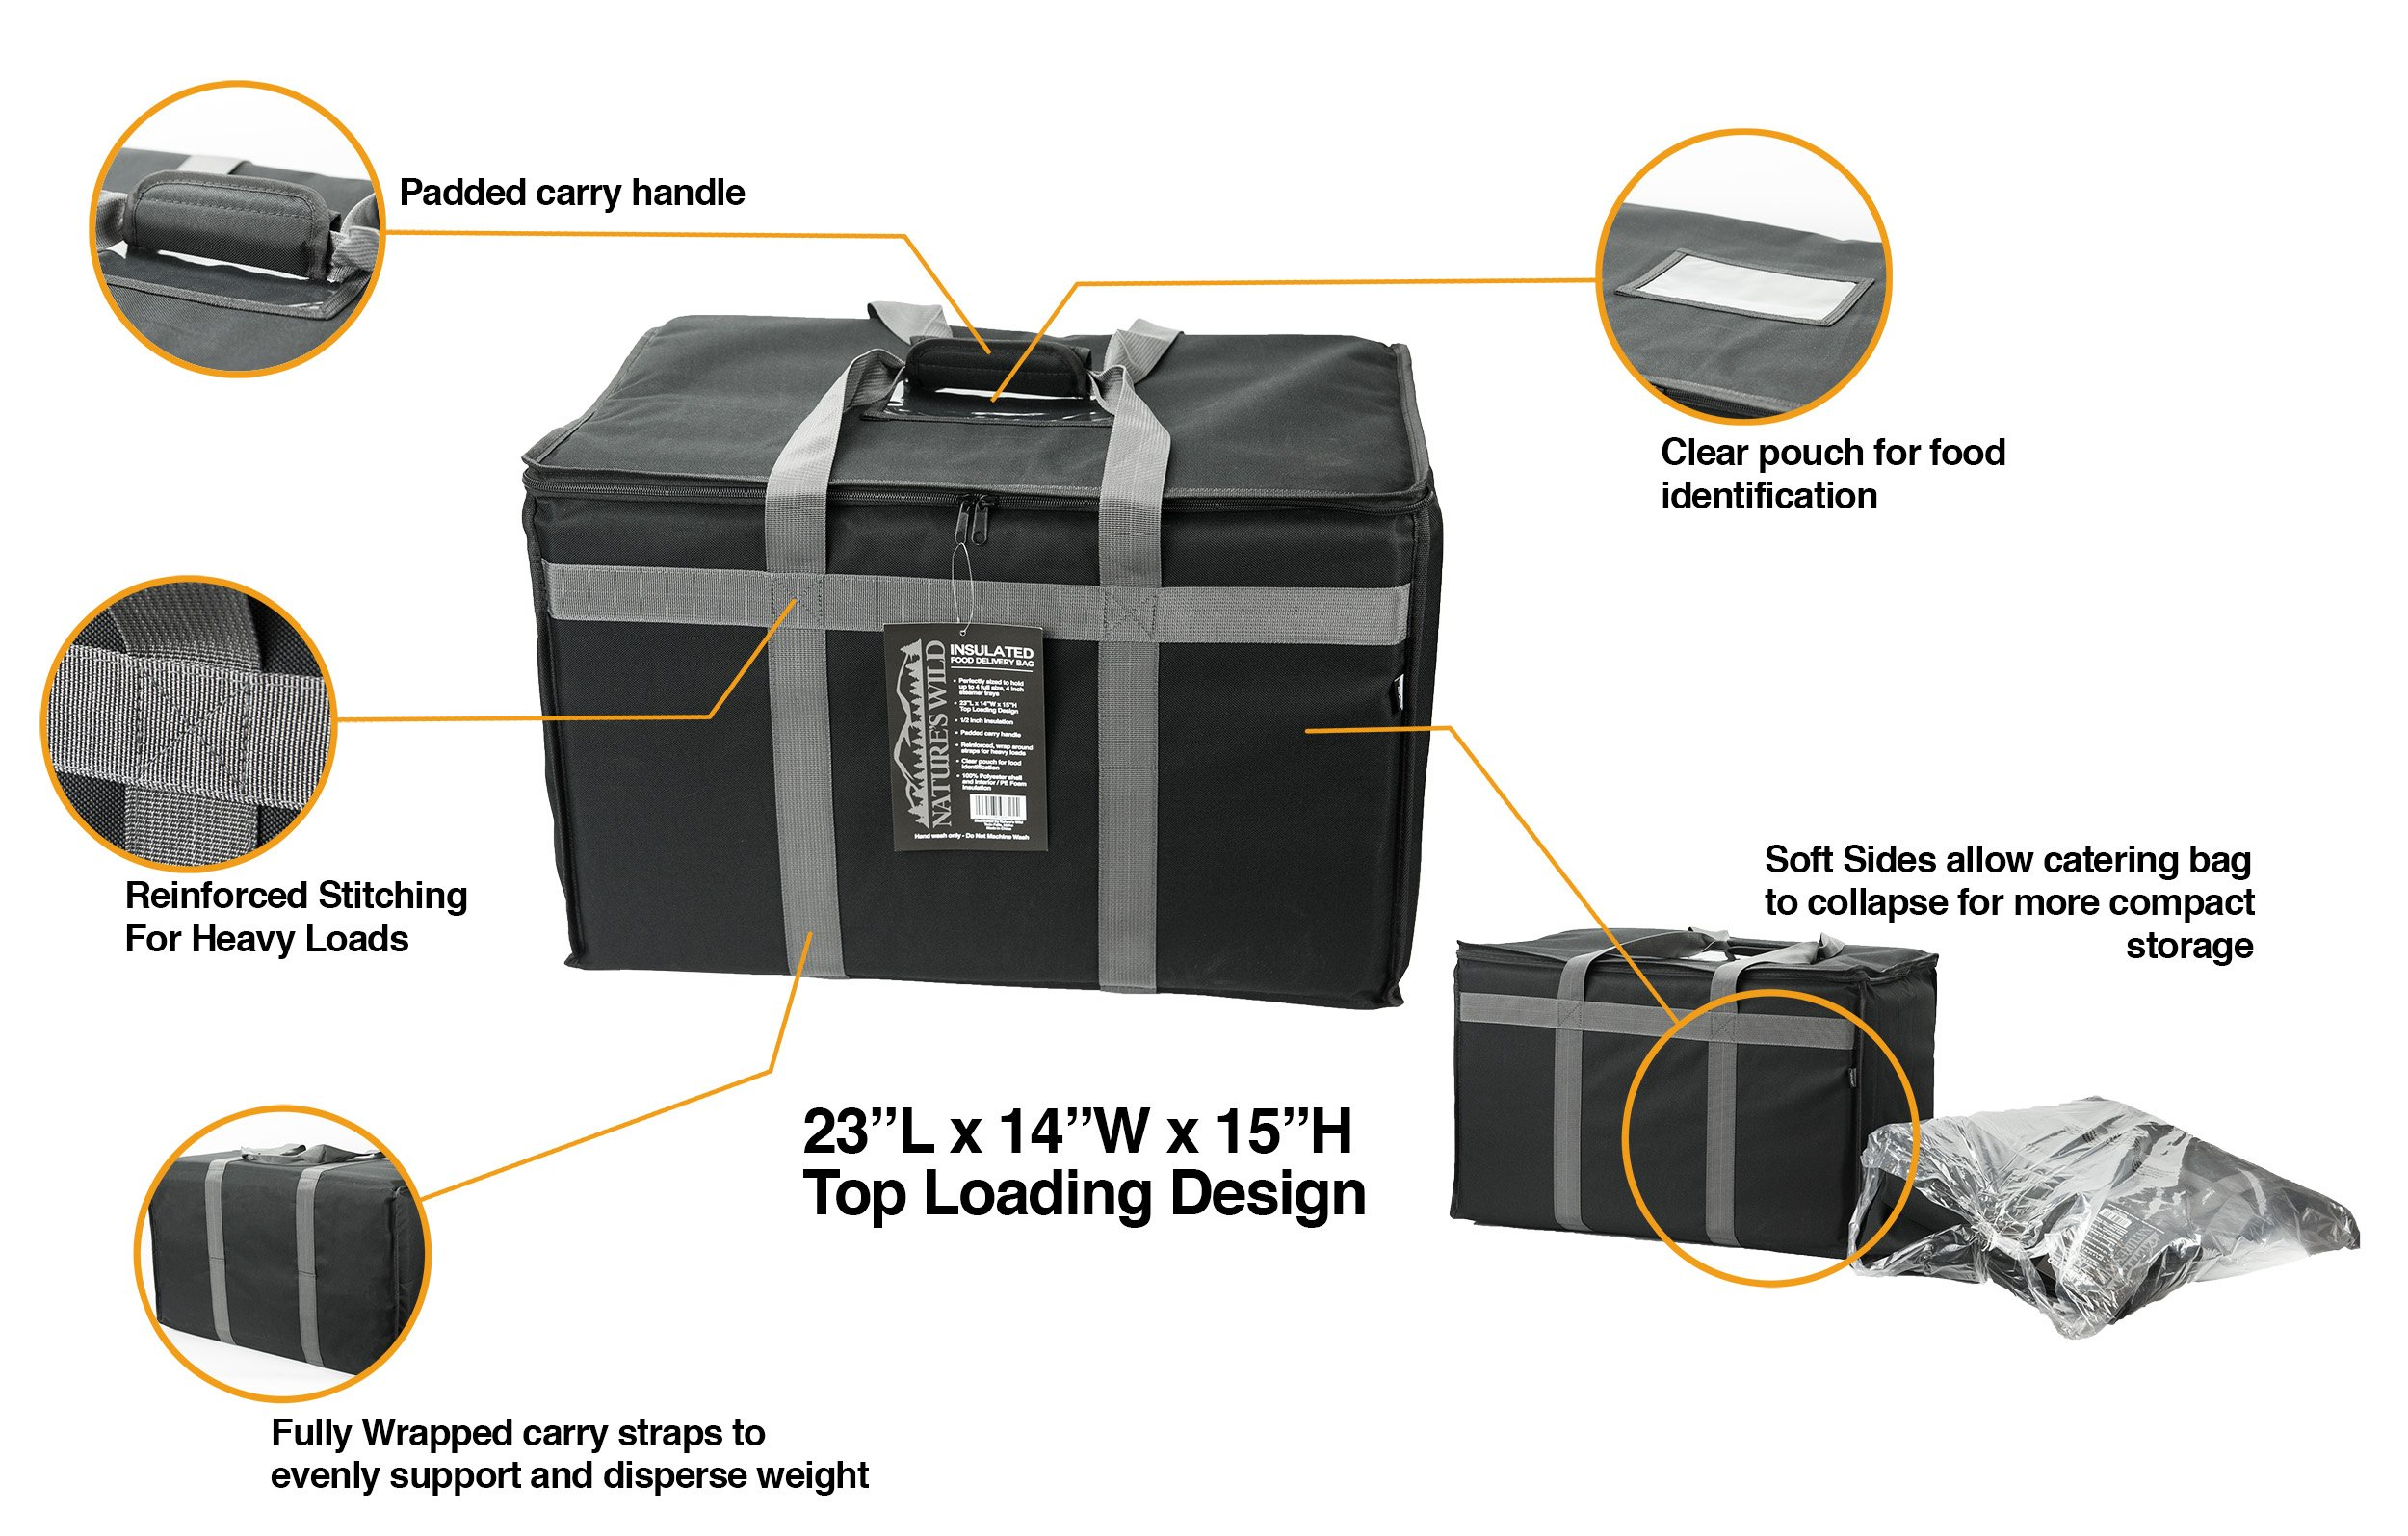 Food Delivery Bag - Premium Commercial Grade Made to accommodate Full Size Chafing Steam Trays - Thick Insulation Cooler Bags with Sturdy Padded Handles - Keeps Foods hot or Cold by Nature's Wild (Image #2)